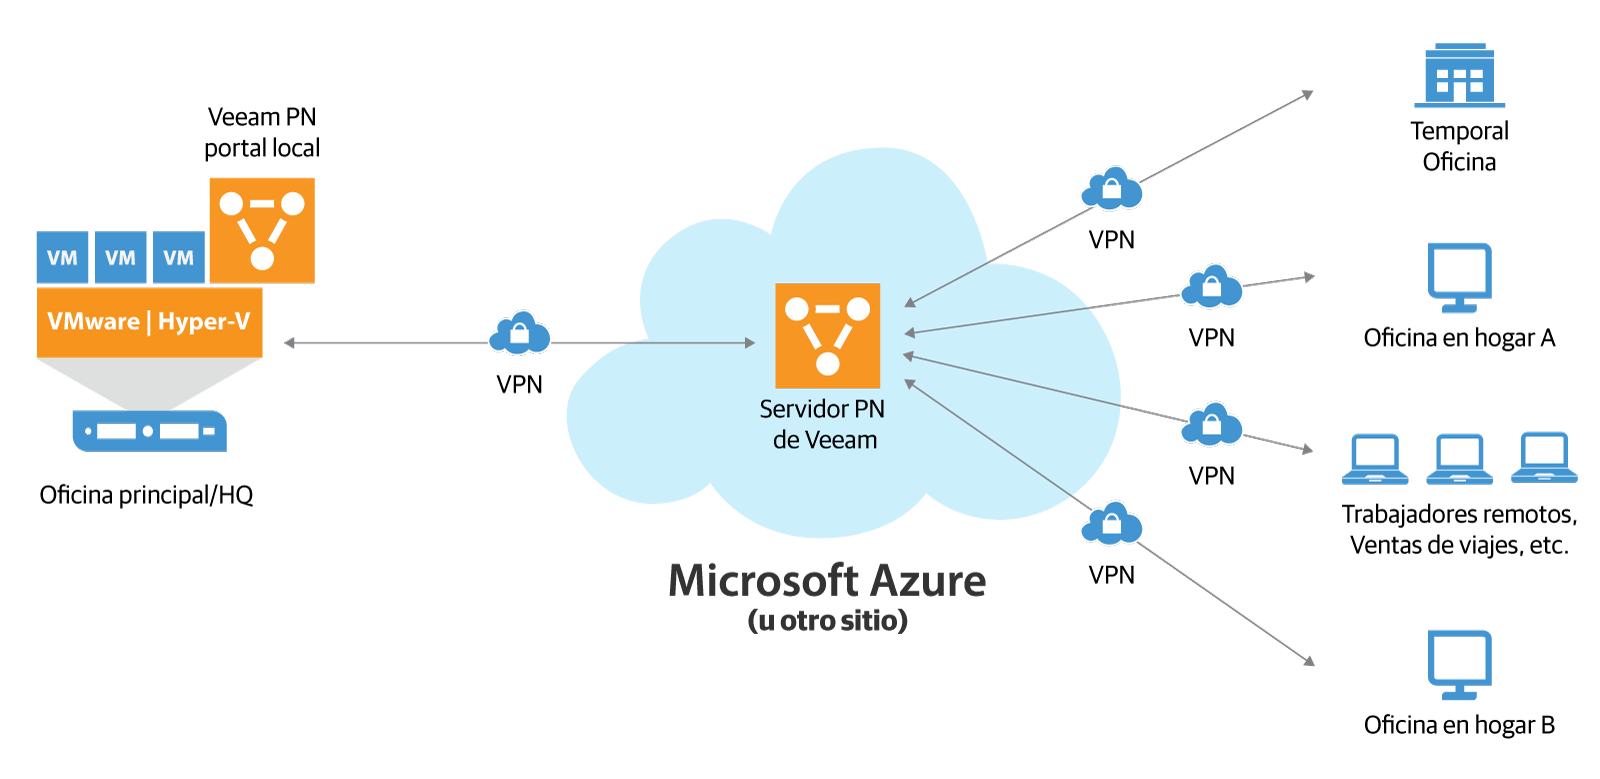 veeam_pn_for_microsoft_azure_es-lat.png